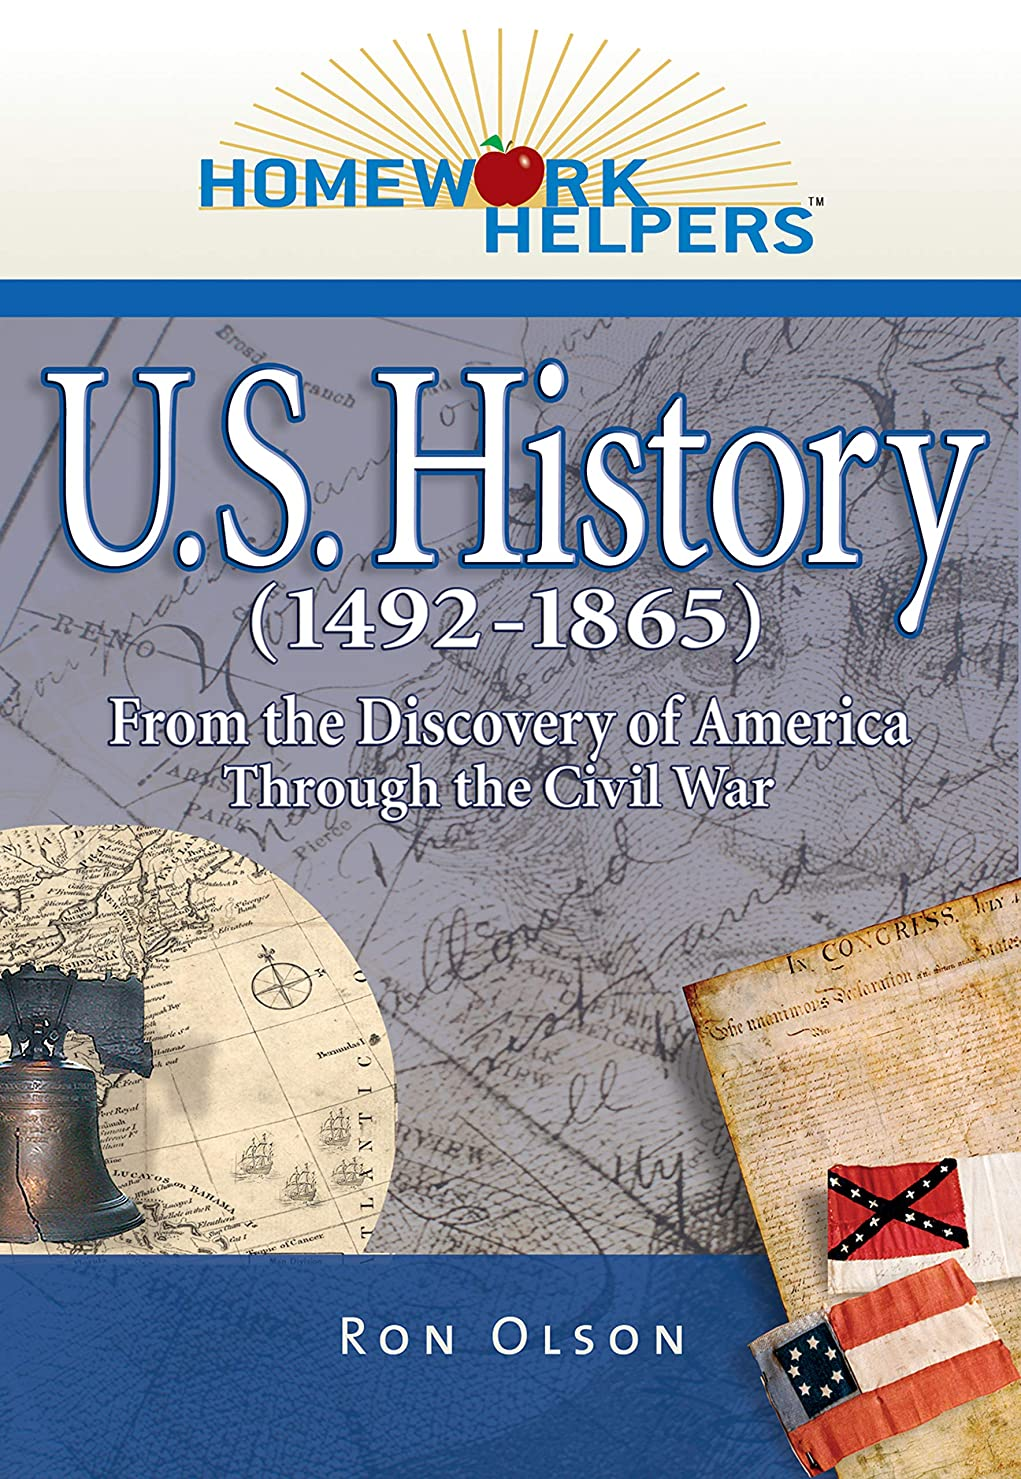 Homework Helpers: U.S. History (1492-1865): From the Discovery of America Through the Civil War (English Edition)